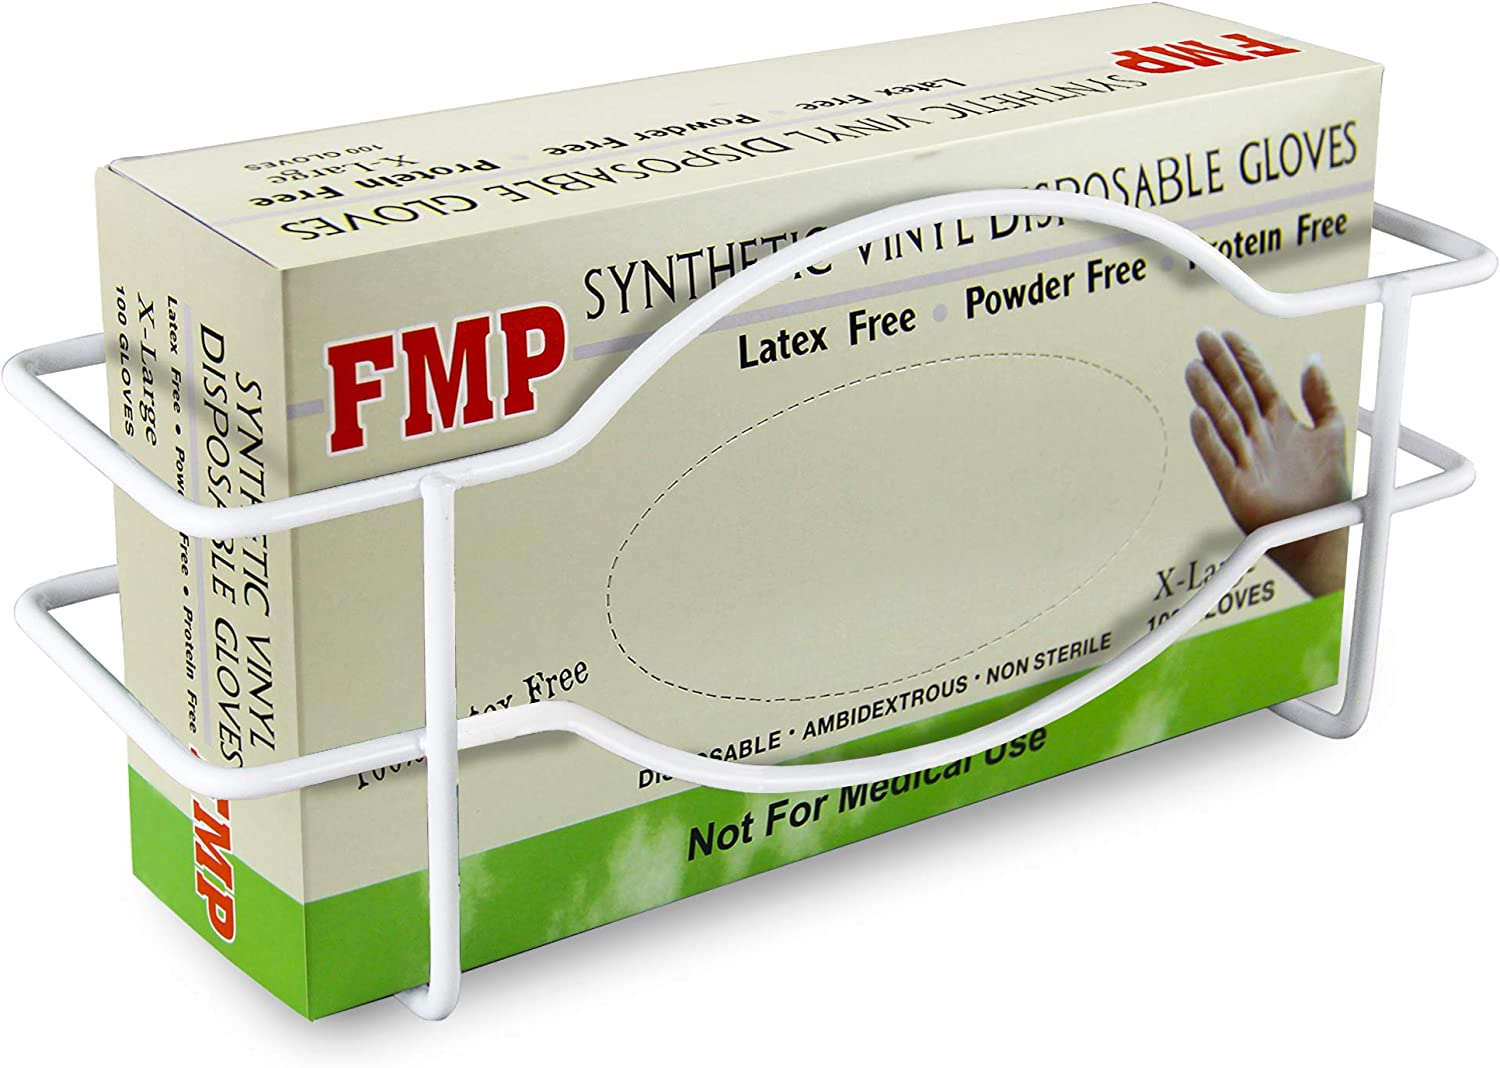 FMP Brands Single Wall Mount Glove Tissue Dispenser, Wire Rack Disposable Gloves Napkin Box Holder, White Durable Metal Organizer for Food Service, Lab, Medical Office, Home, Garage